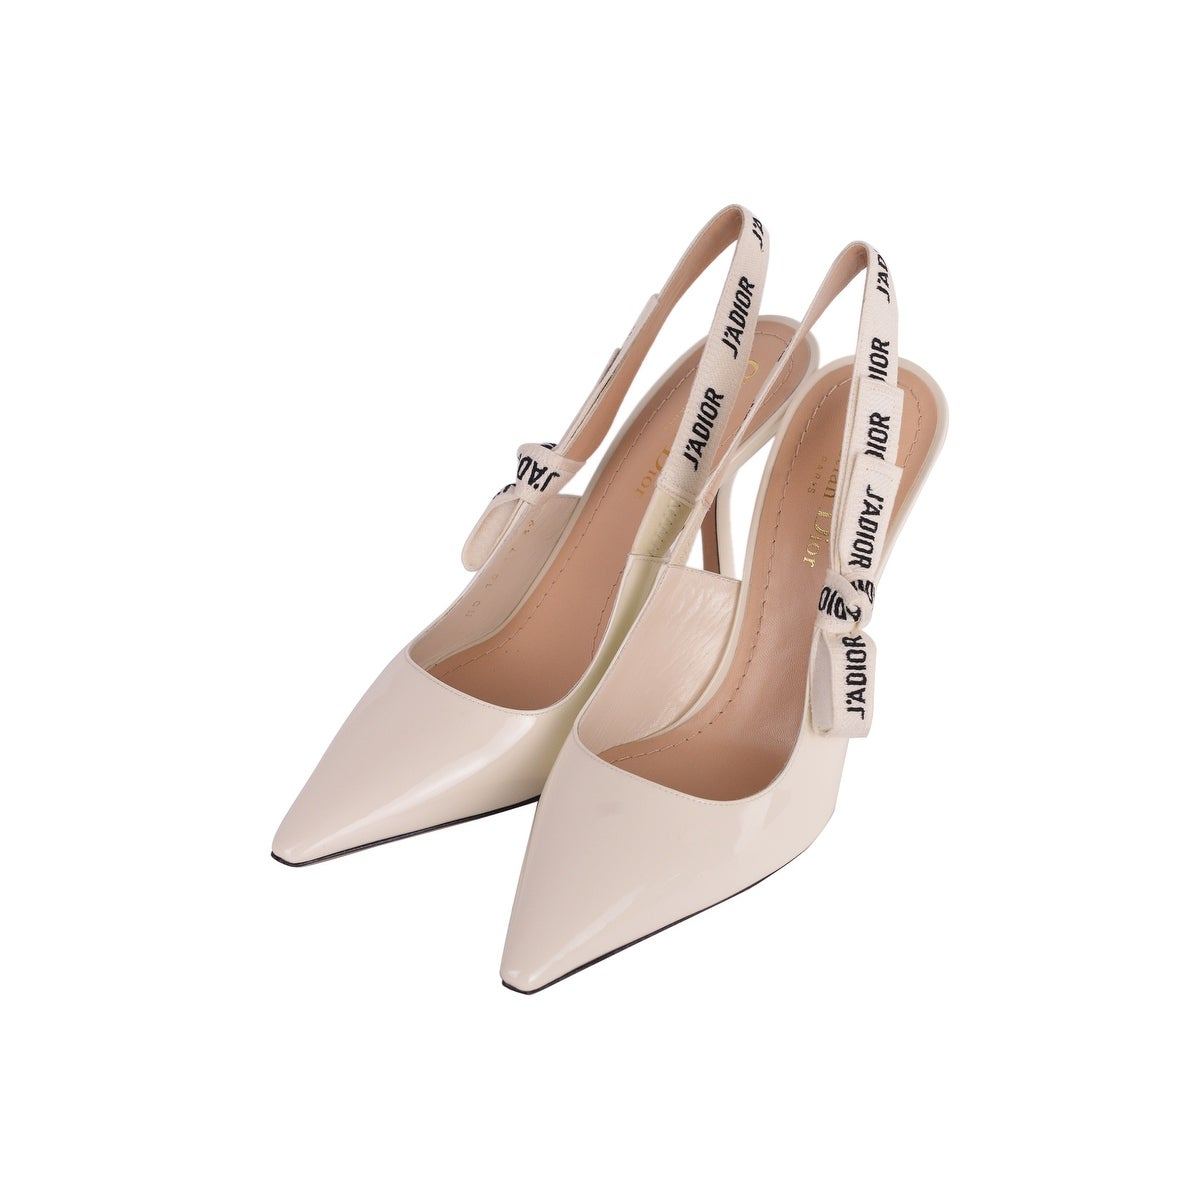 24ae7384613 Shop Dior Womens Ivory Patent Leather J Adior Slingback Pumps - Free  Shipping Today - Overstock - 26386742